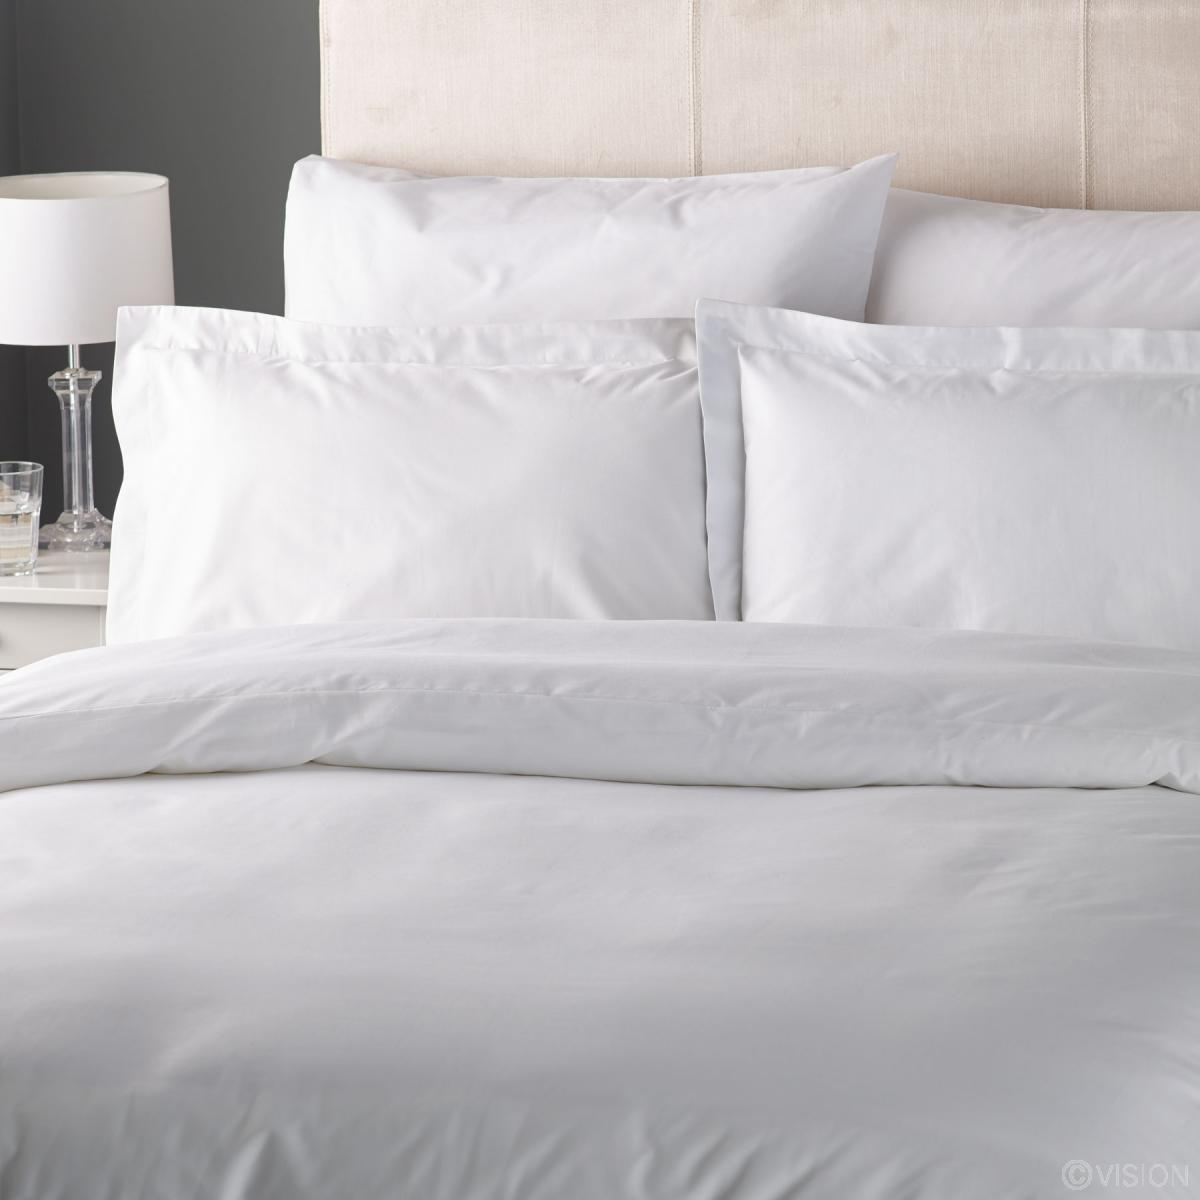 Fusaro white plain cotton rich duvet cover